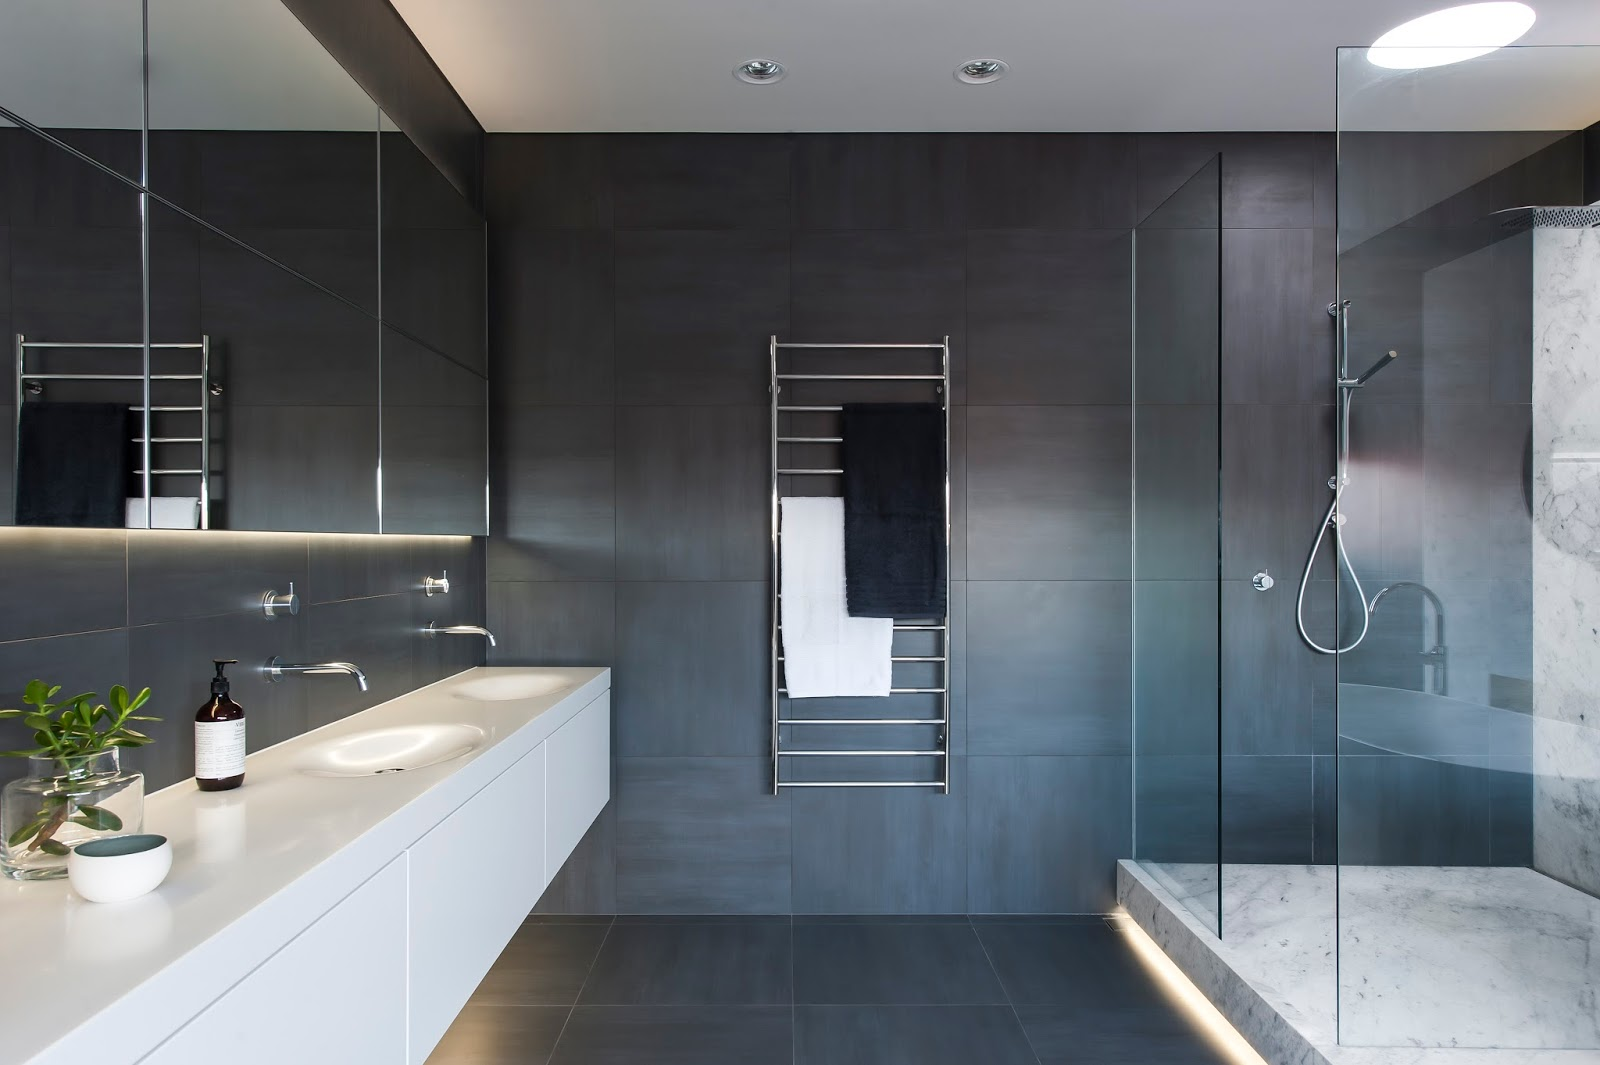 Minosa understated elegance creates a stunning bathroom for Modern ensuite ideas